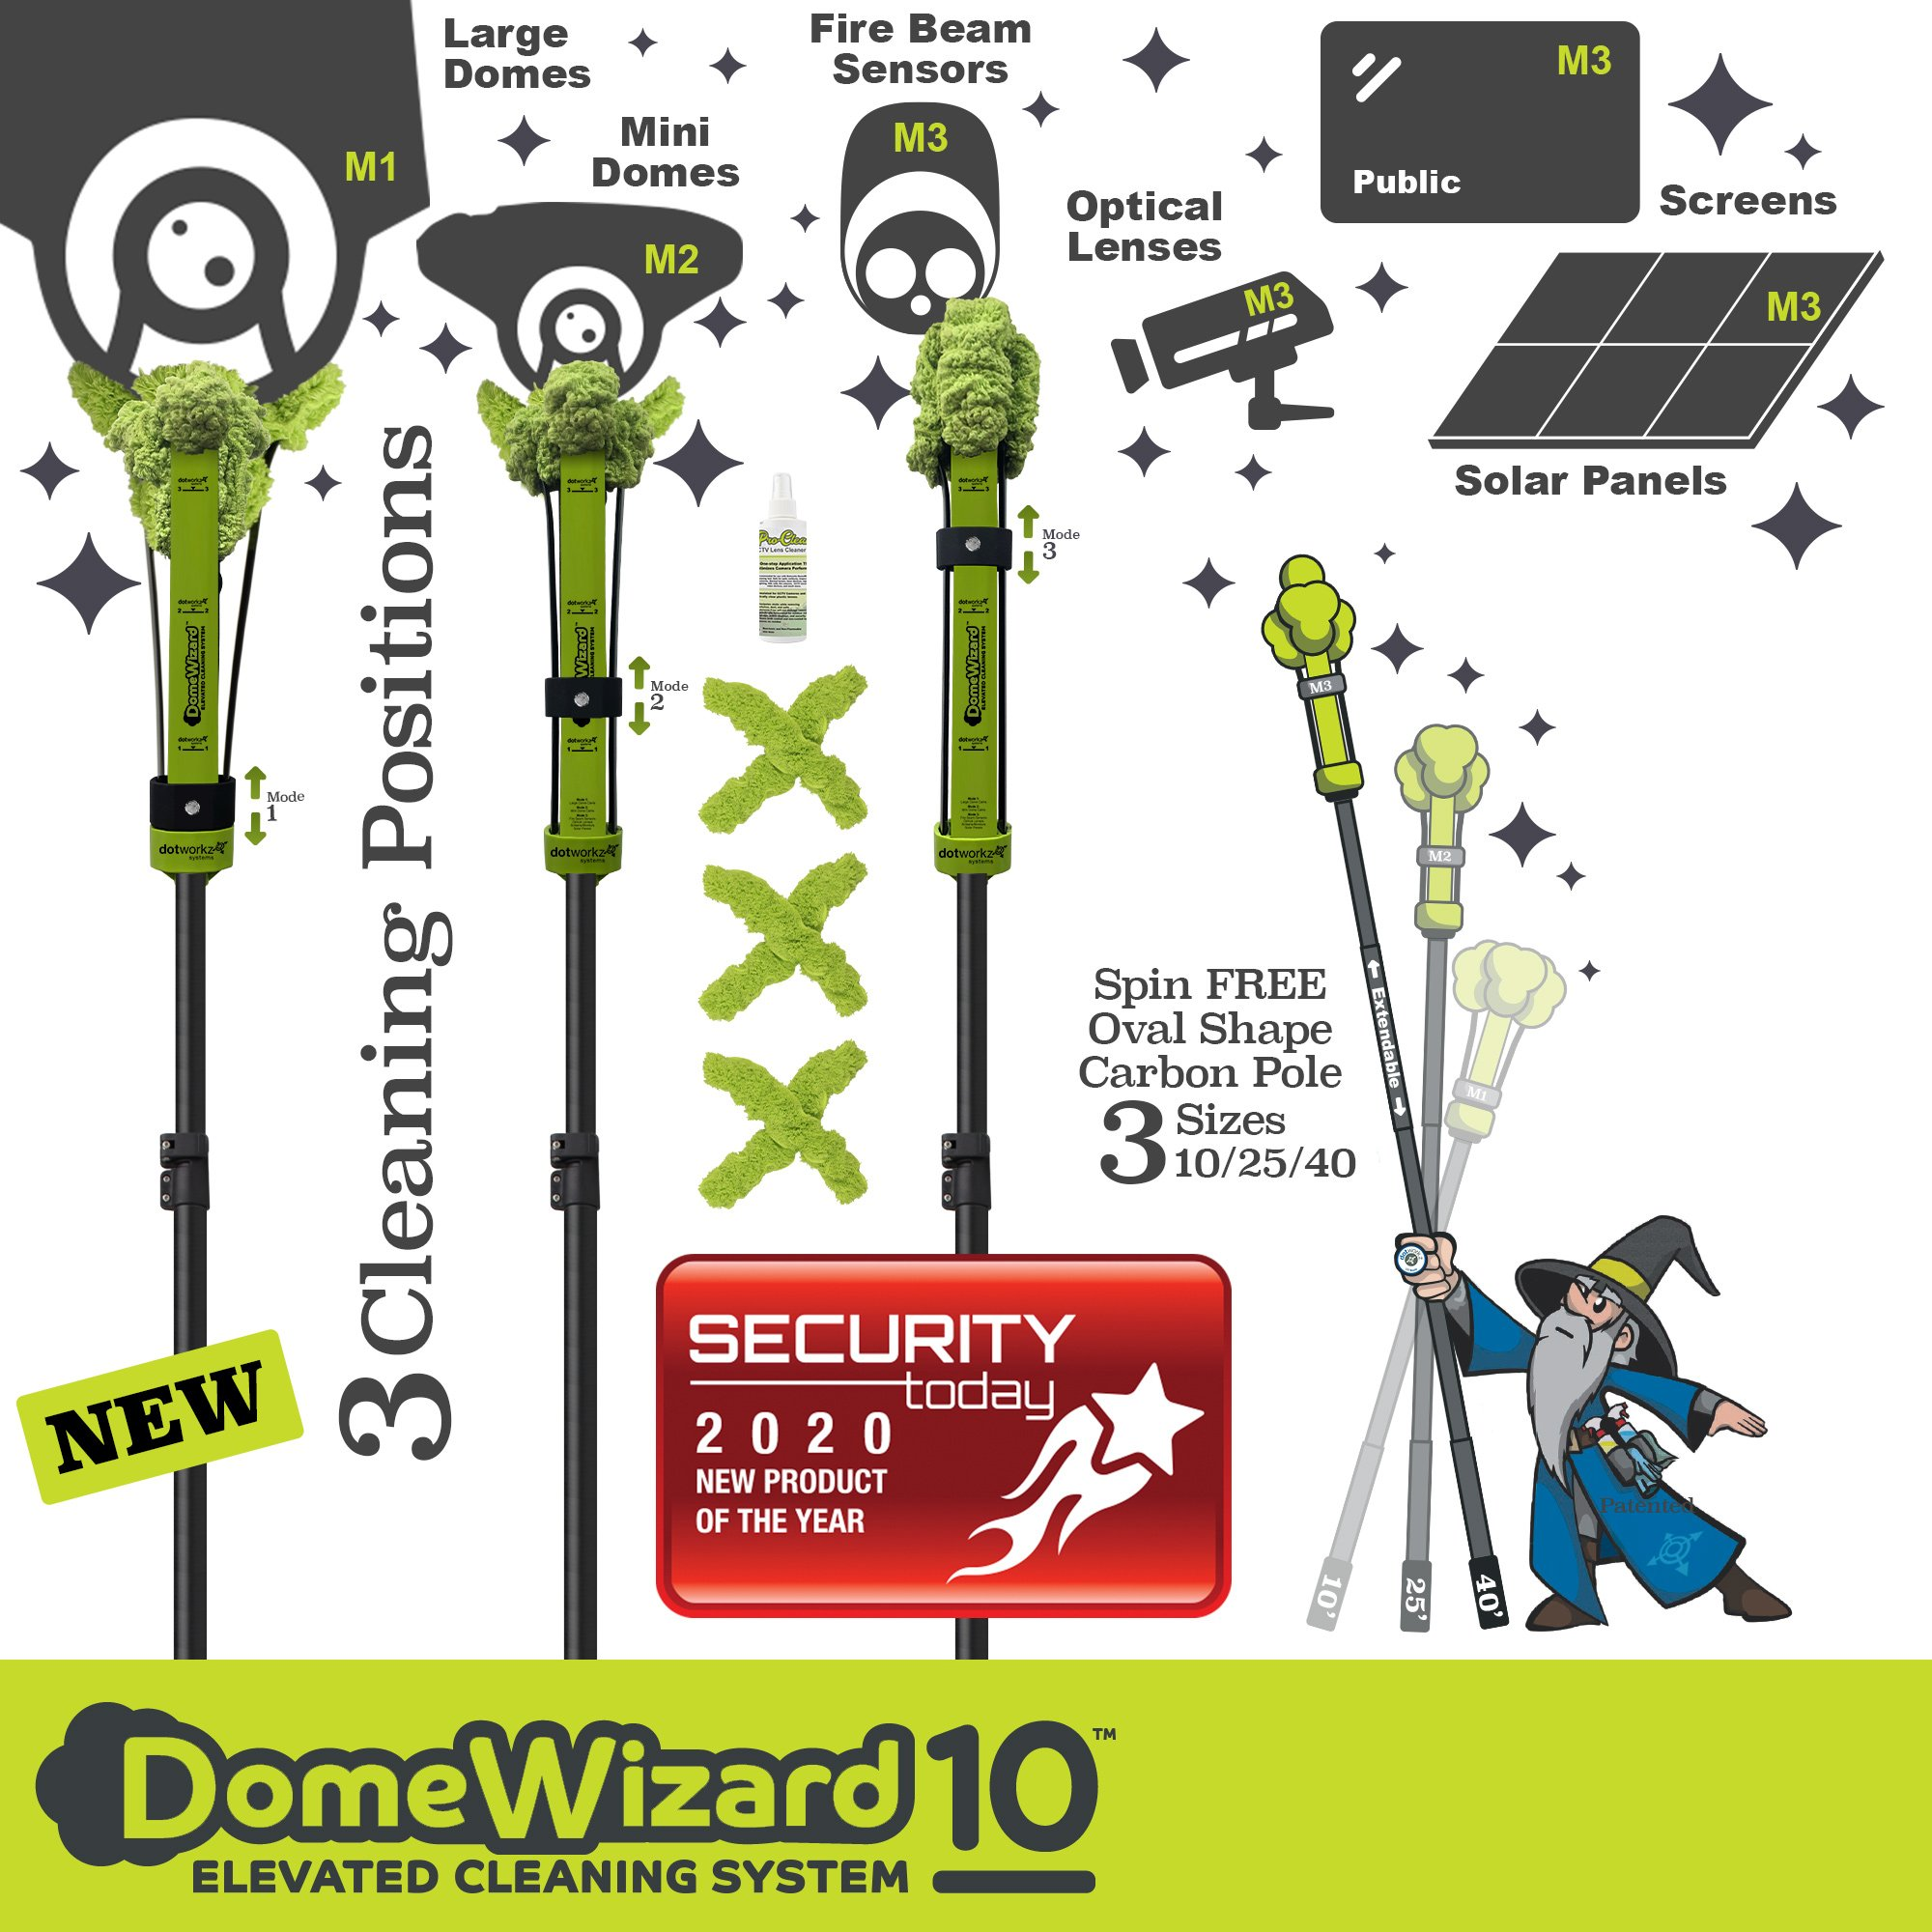 DomeWizard 10 – Elevated Cleaning System (DW-10) with 3 Cleaning Modes